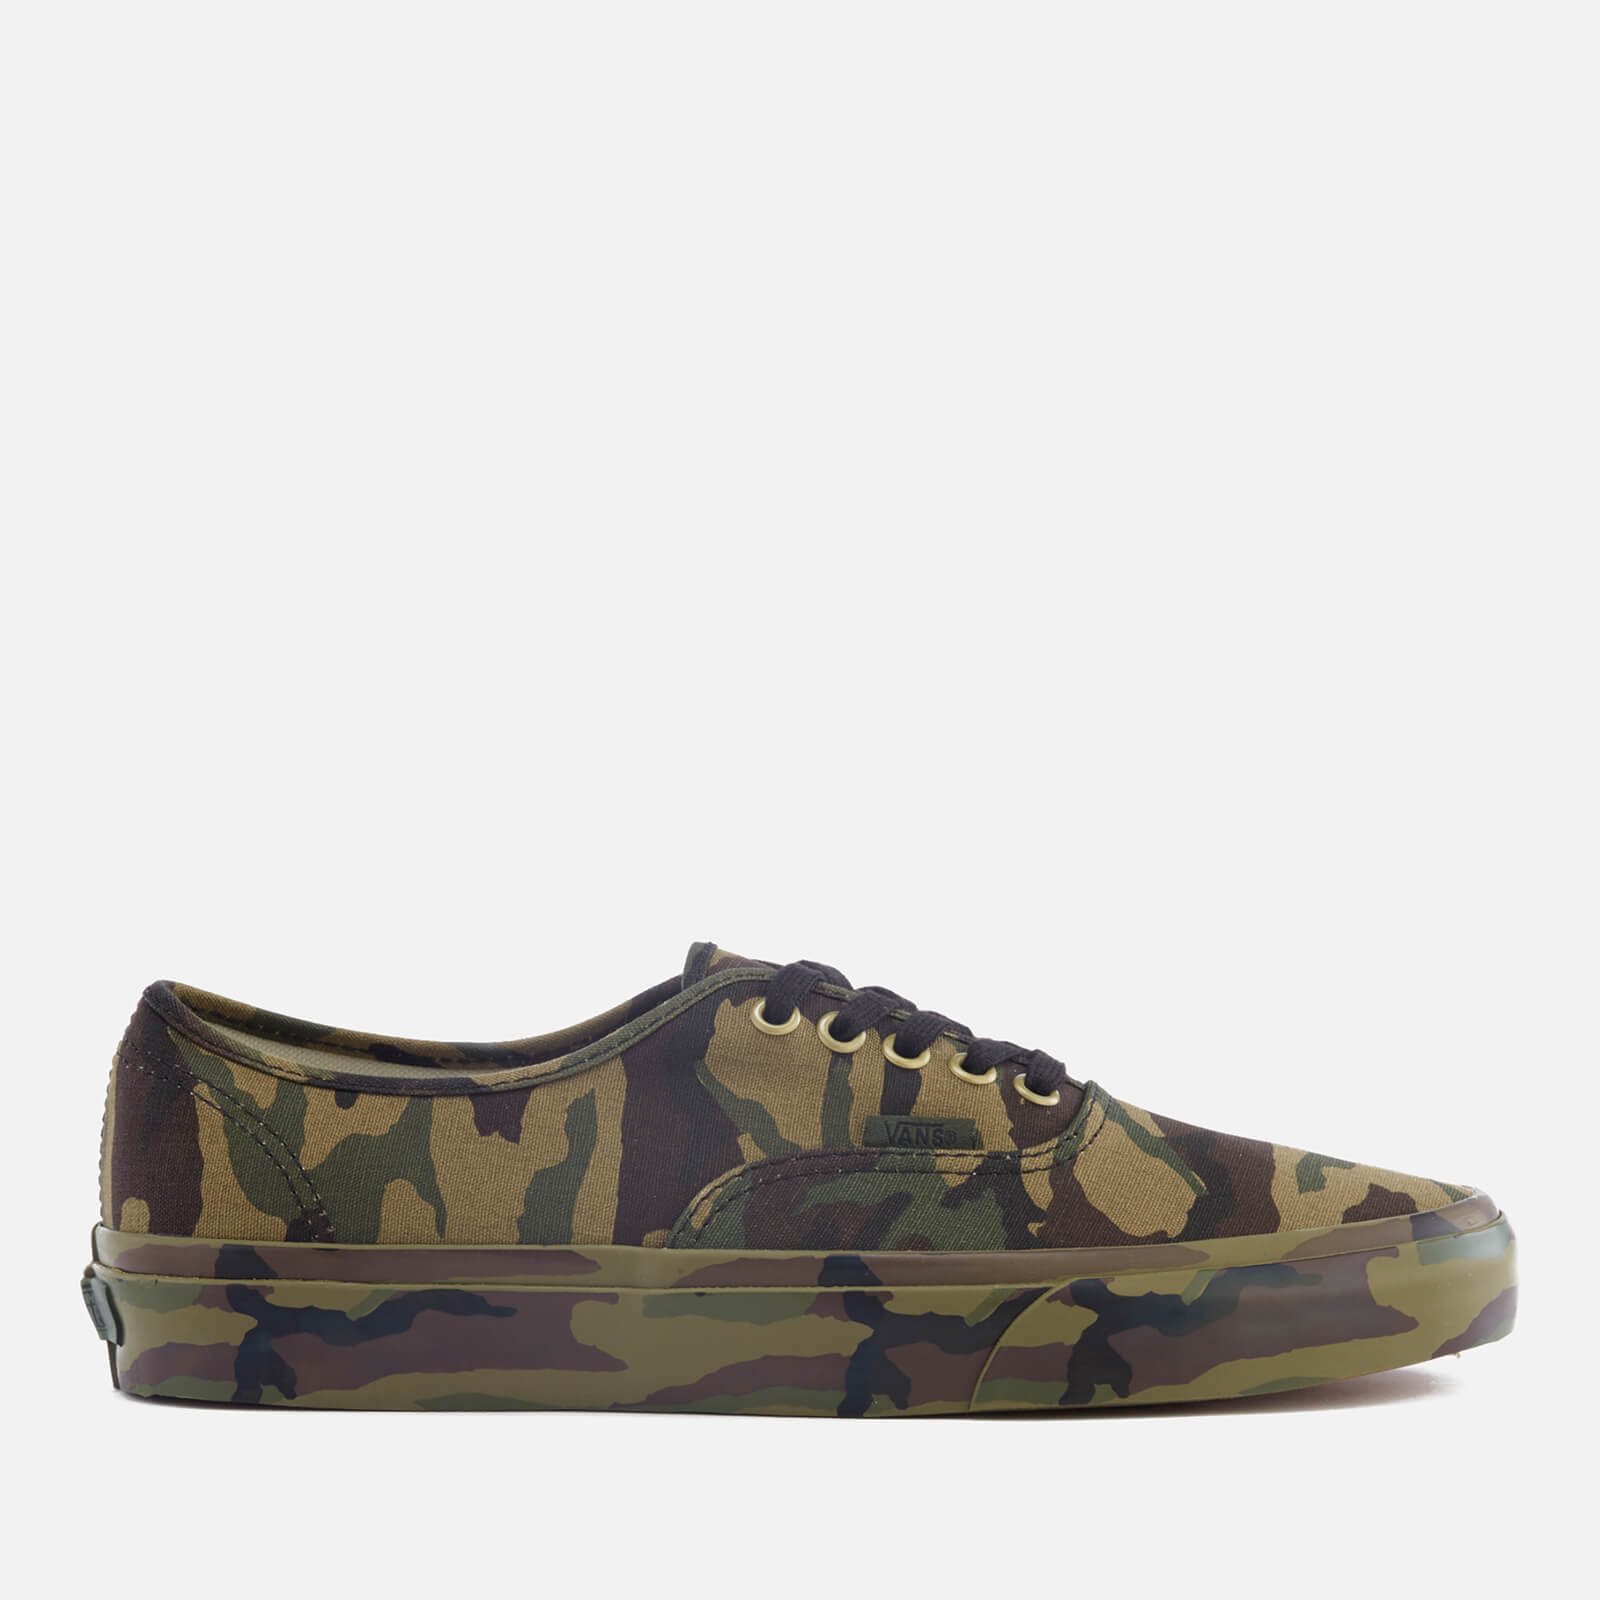 91a90c952a Vans Men s Authentic Mono Print Trainers - Classic Camo - Free UK Delivery  over £50